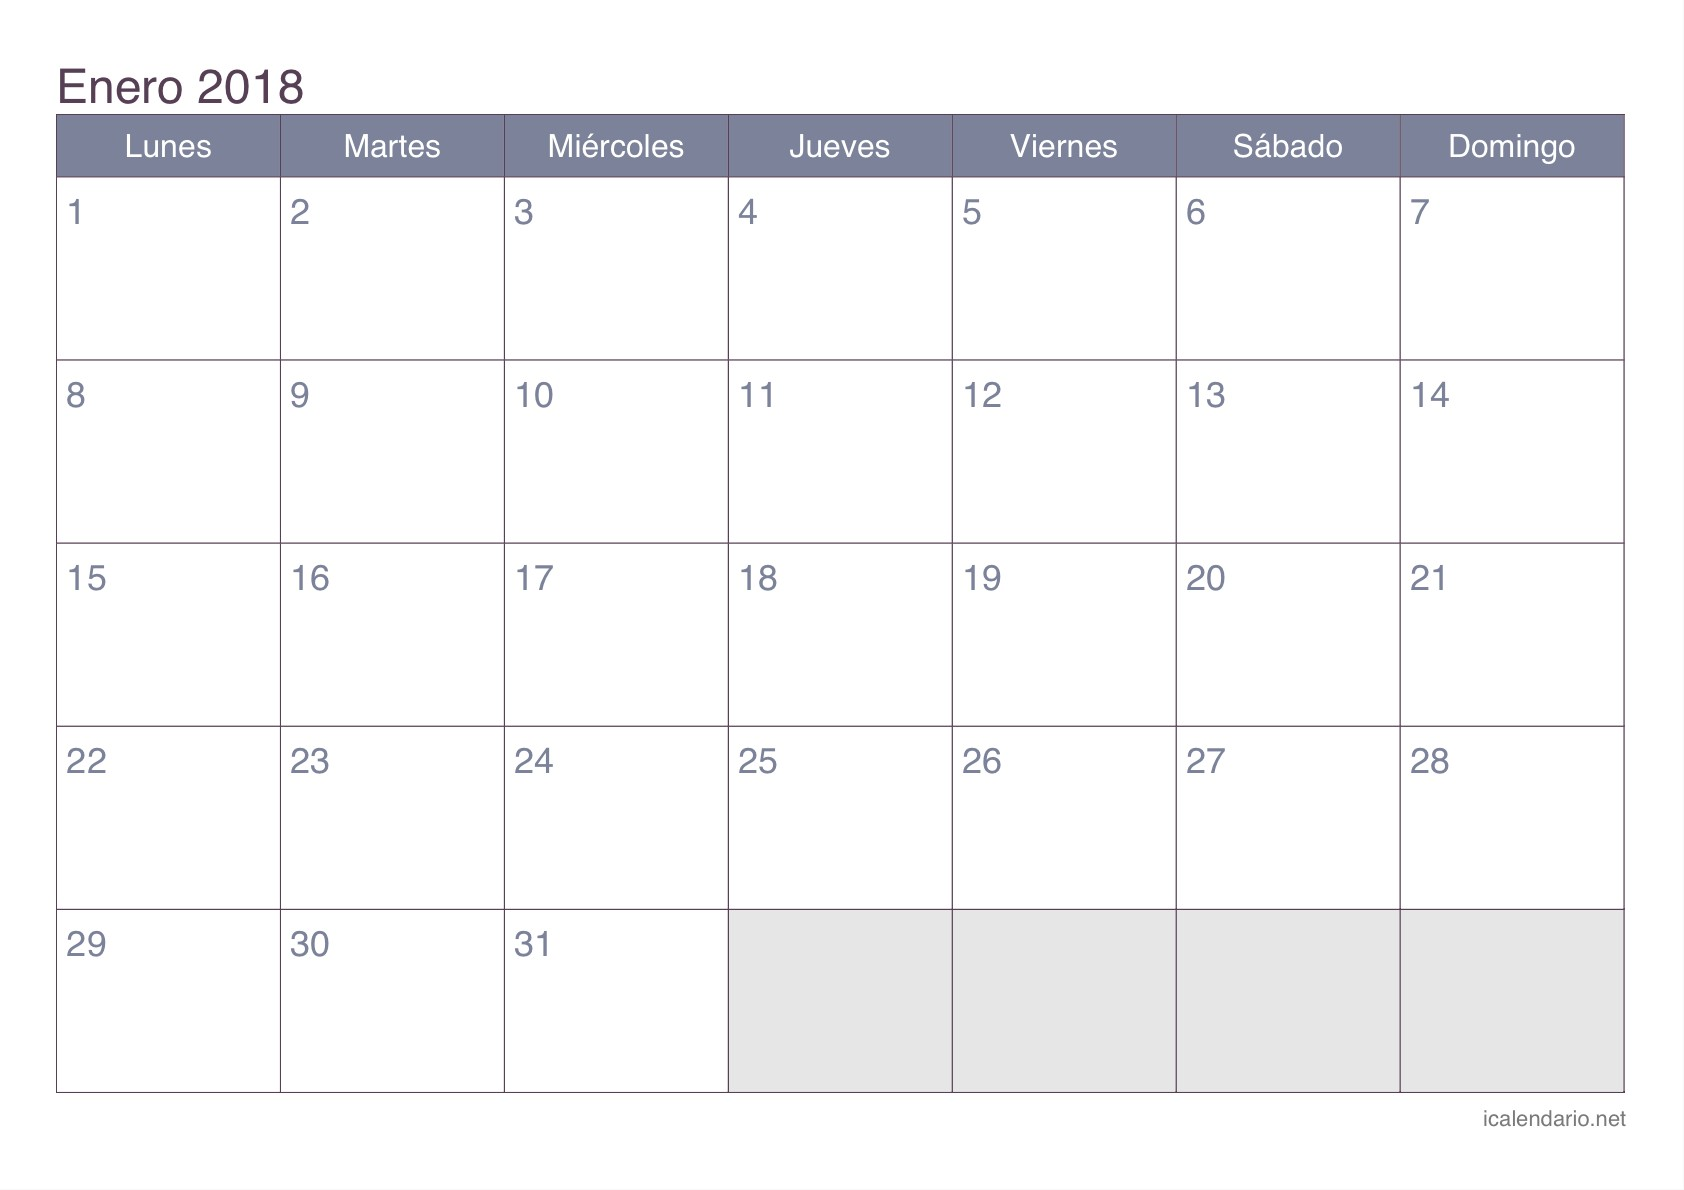 Imprimir Calendario Febrero Y Marzo 2019 Actual 2019 2018 Calendar Printable with Holidays List Kalender Kalendar Of Imprimir Calendario Febrero Y Marzo 2019 Recientes Descarga Nuestro Calendario 2018 Cámara De Caracas